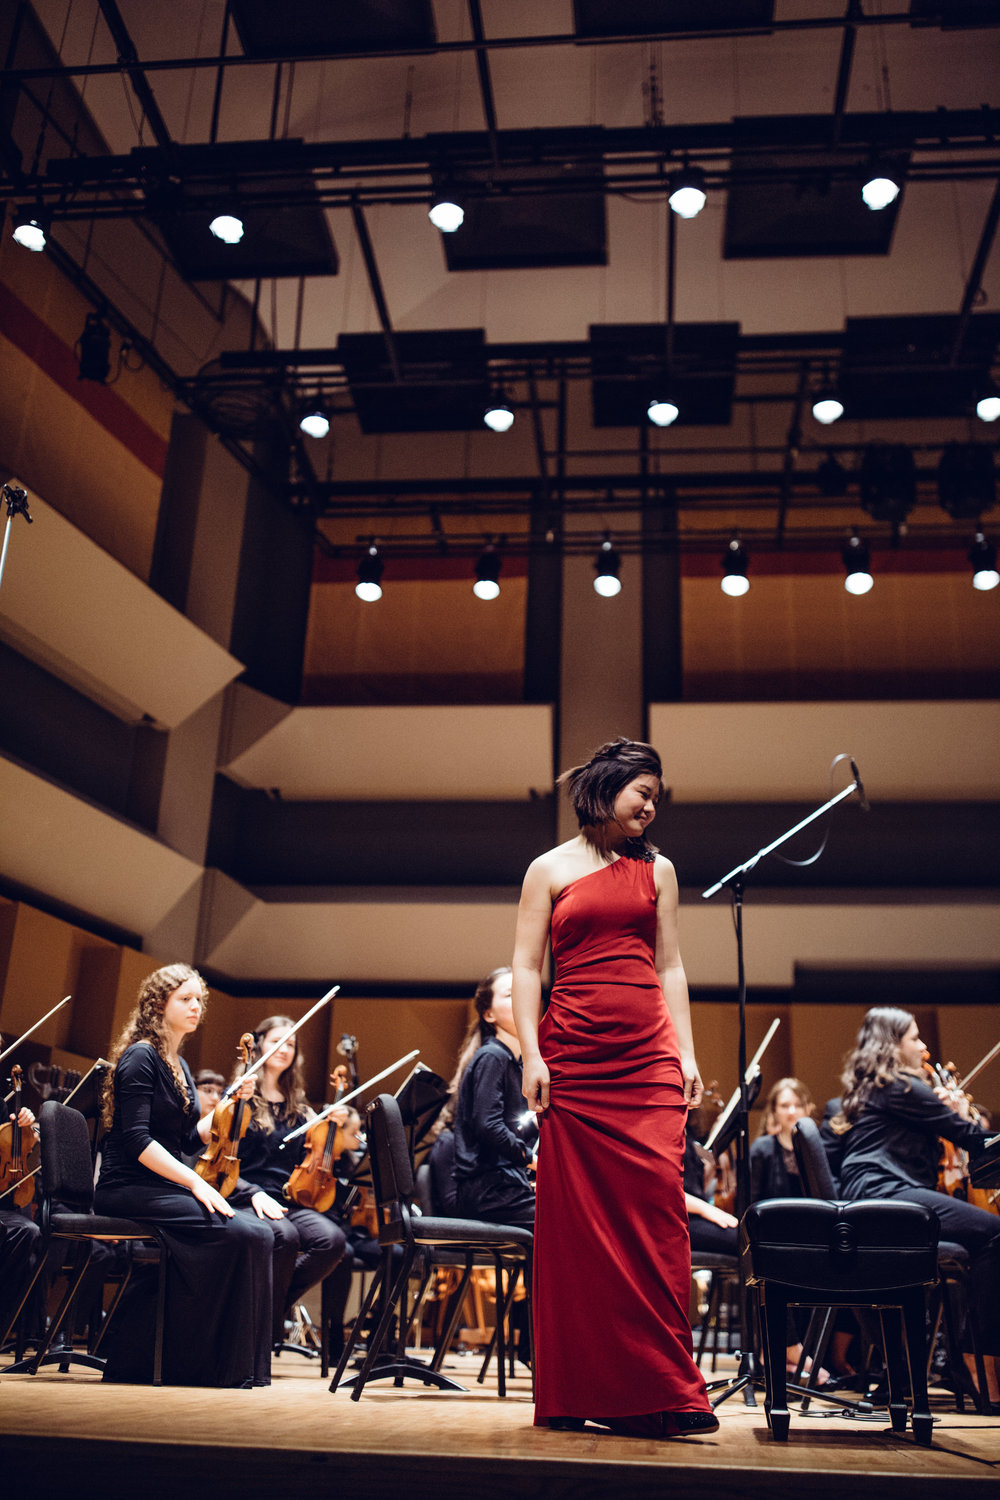 FAIRBANKS SYMPHONY ORCHESTRA MARCH 26, 2020 8PM